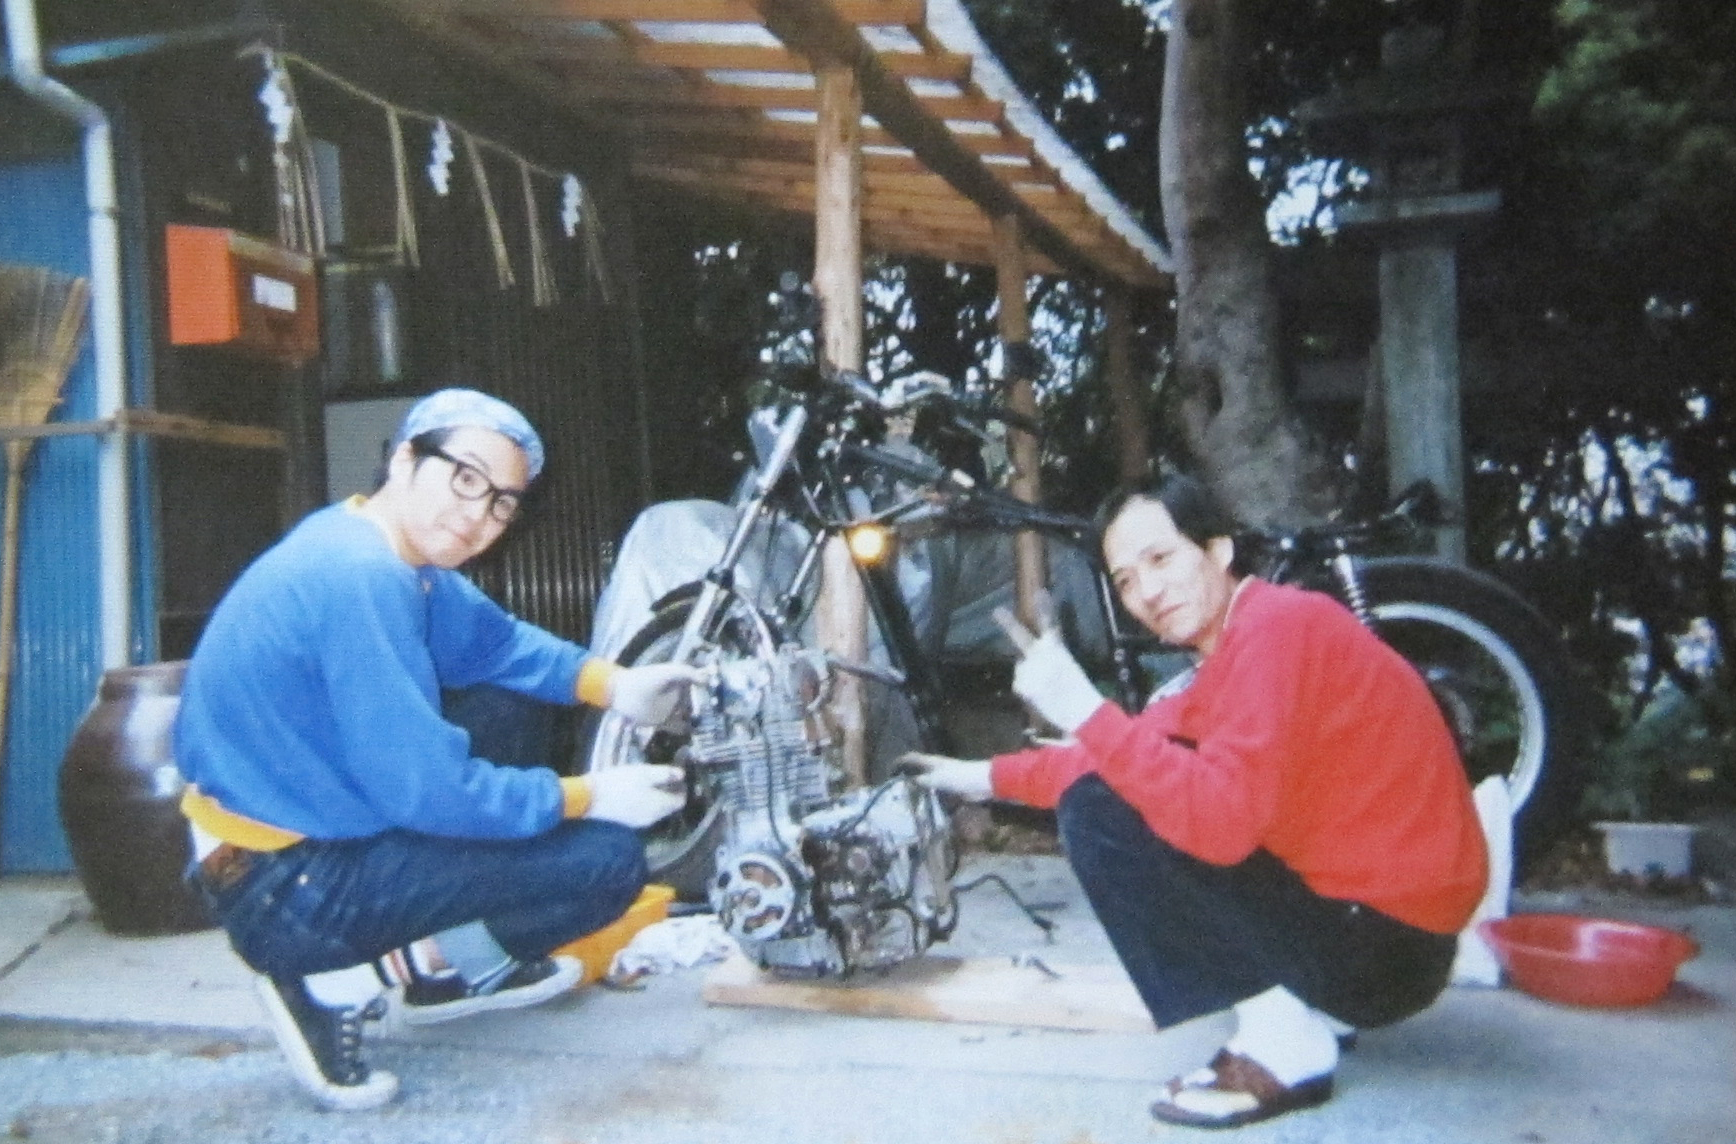 Keino and father  taking apart XS650